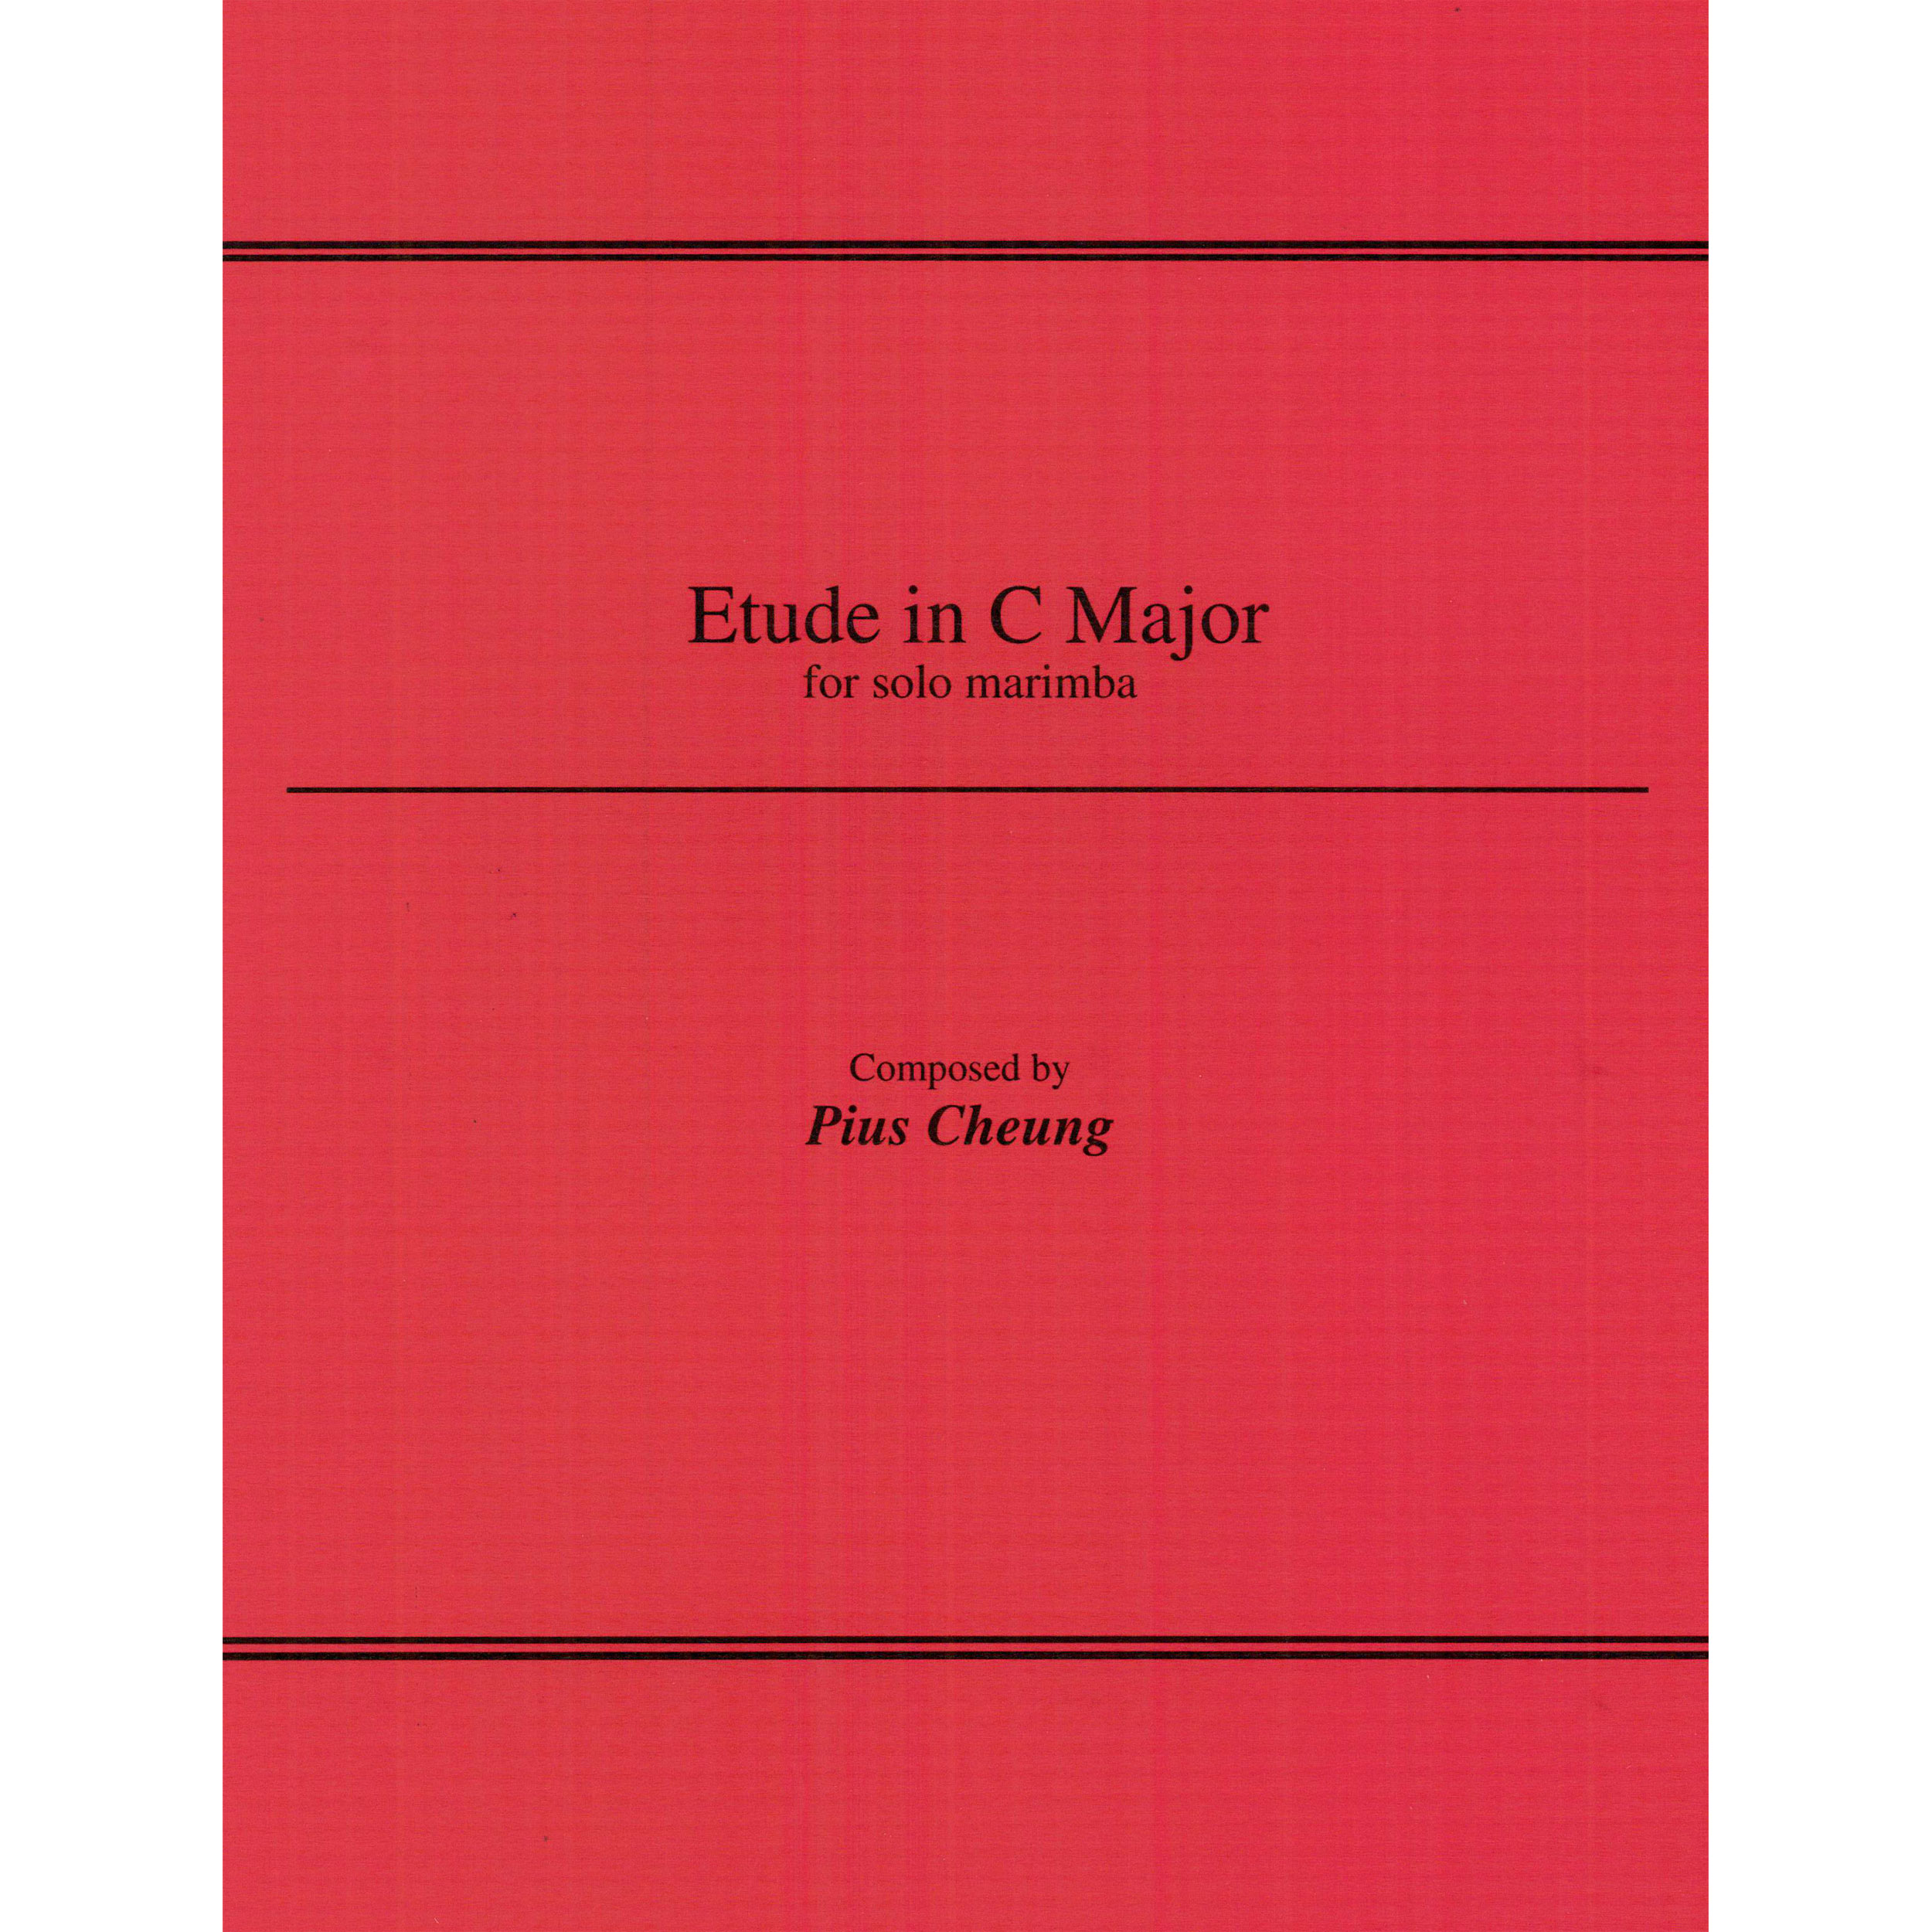 Etude in C Major by Pius Cheung